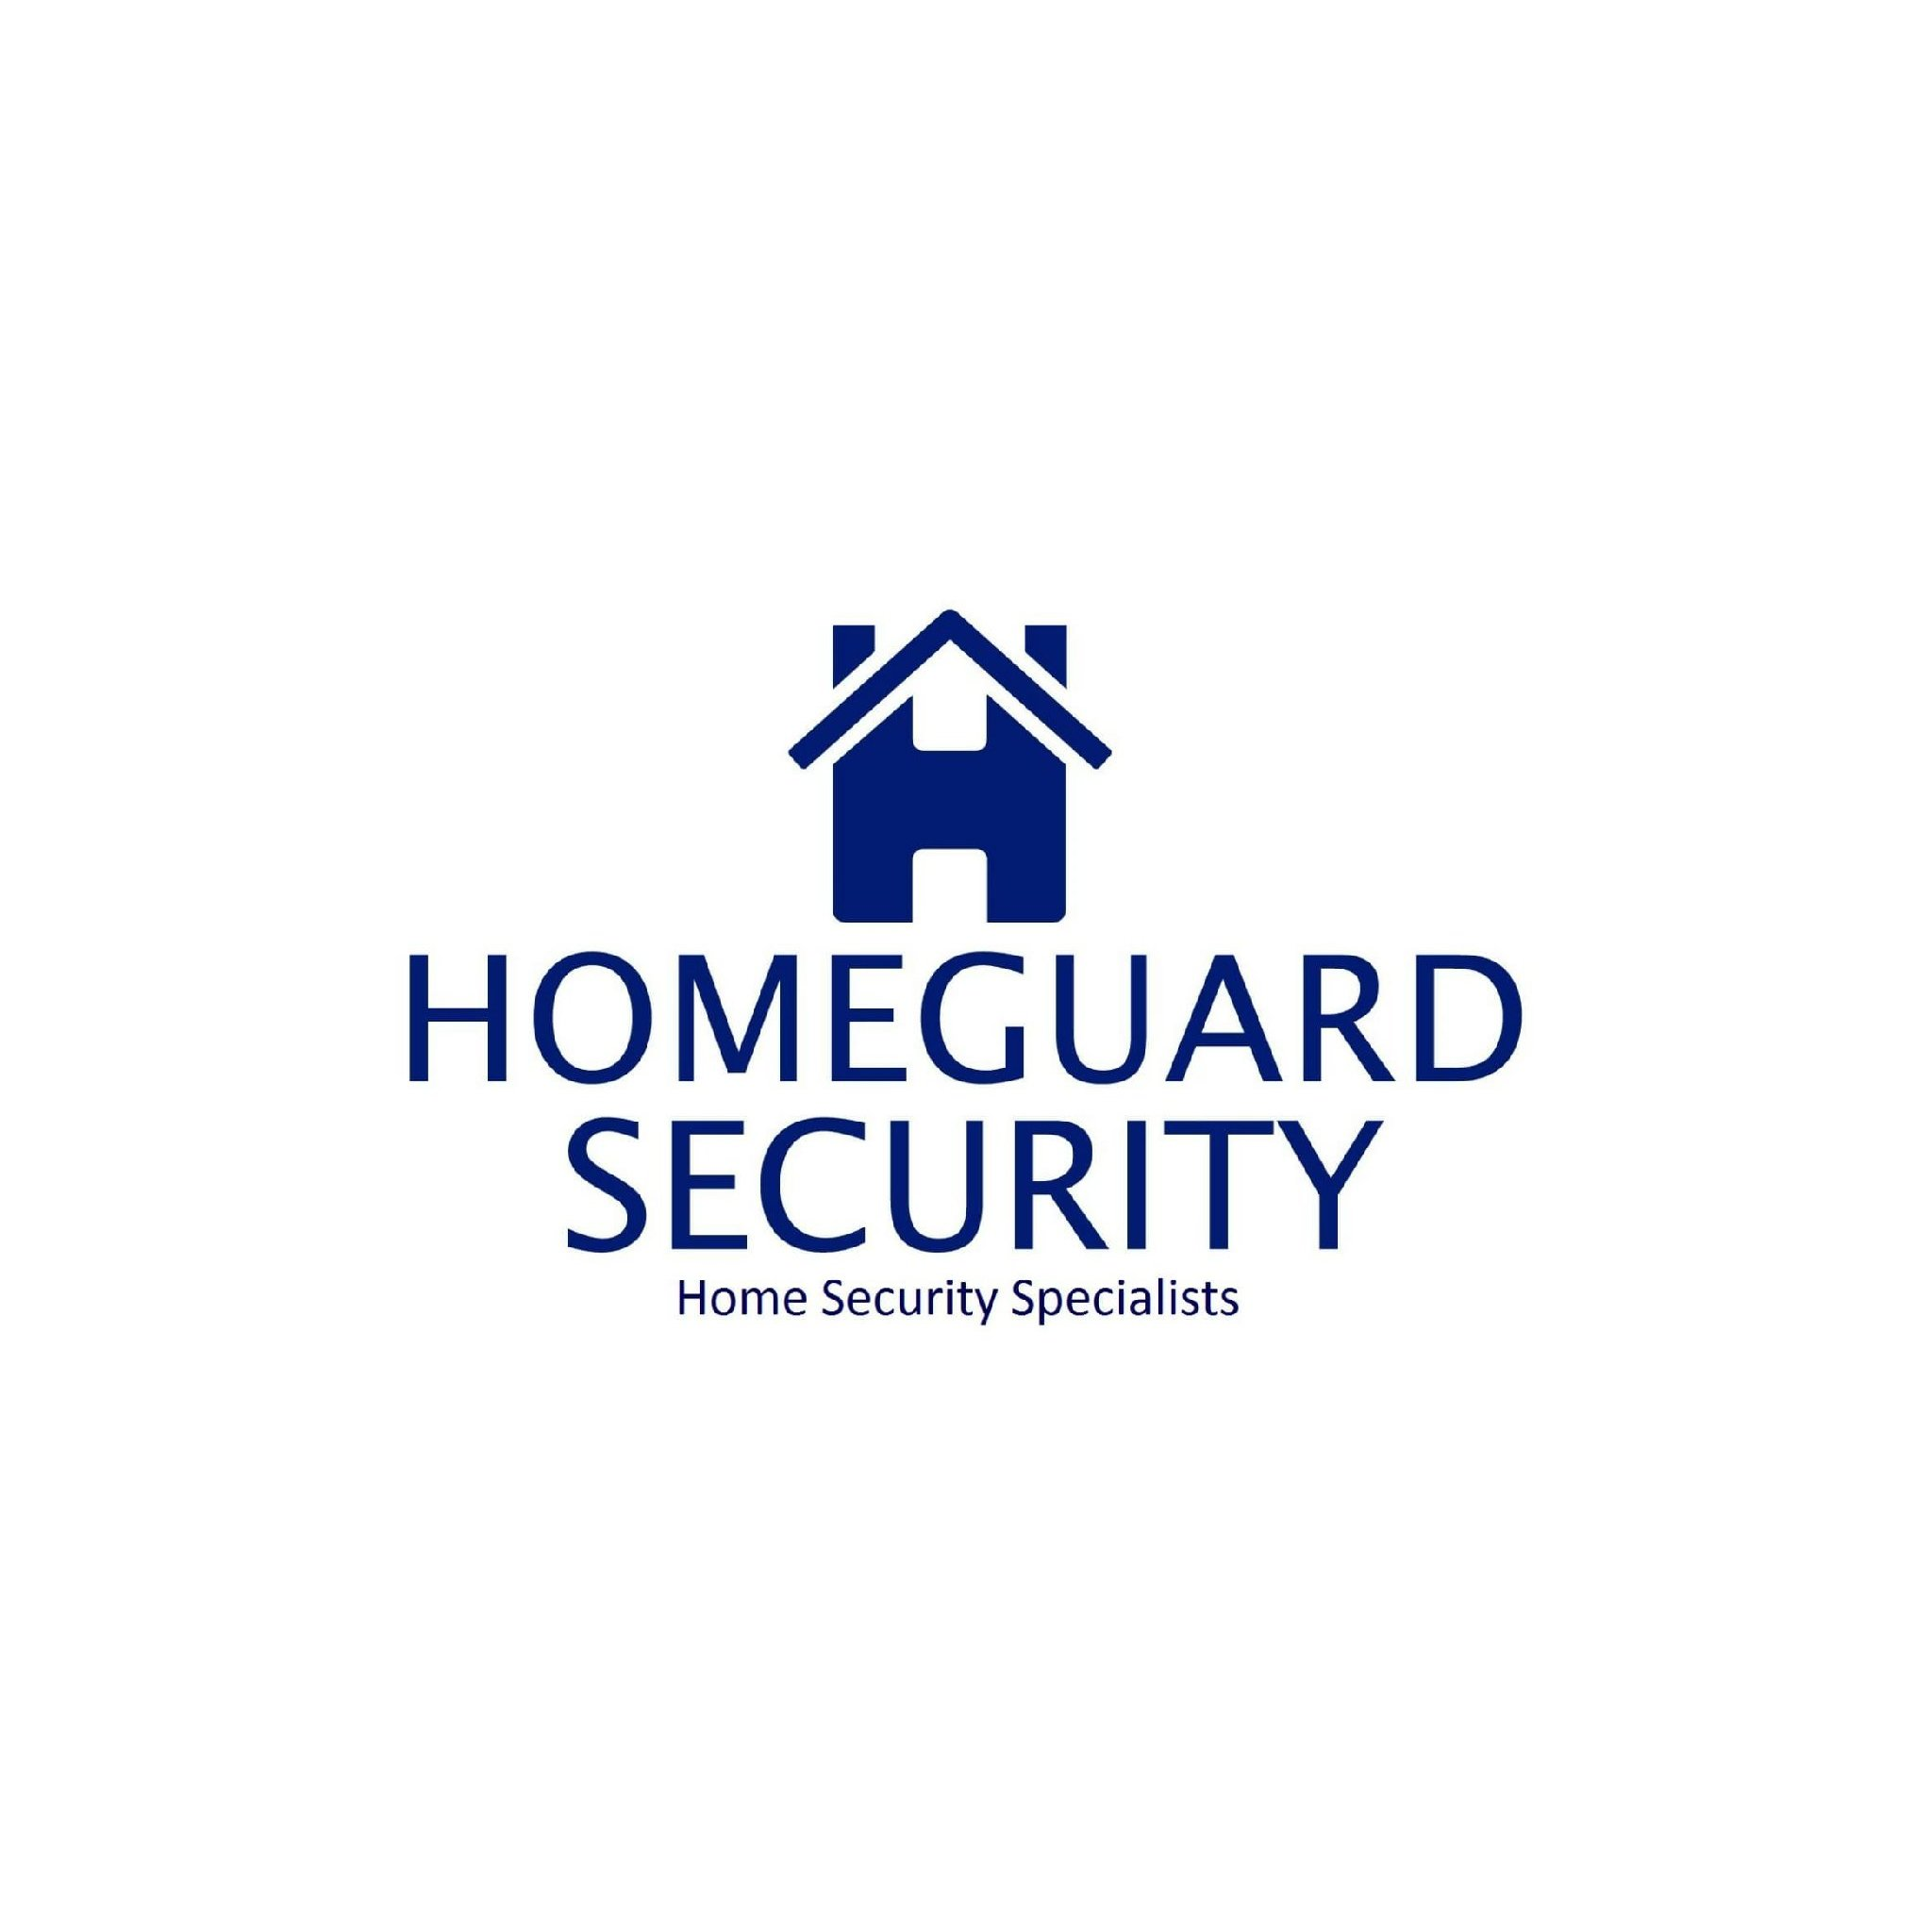 Homeguard Security Ltd - Blackburn, Lancashire BB2 1JX - 01254 583600 | ShowMeLocal.com